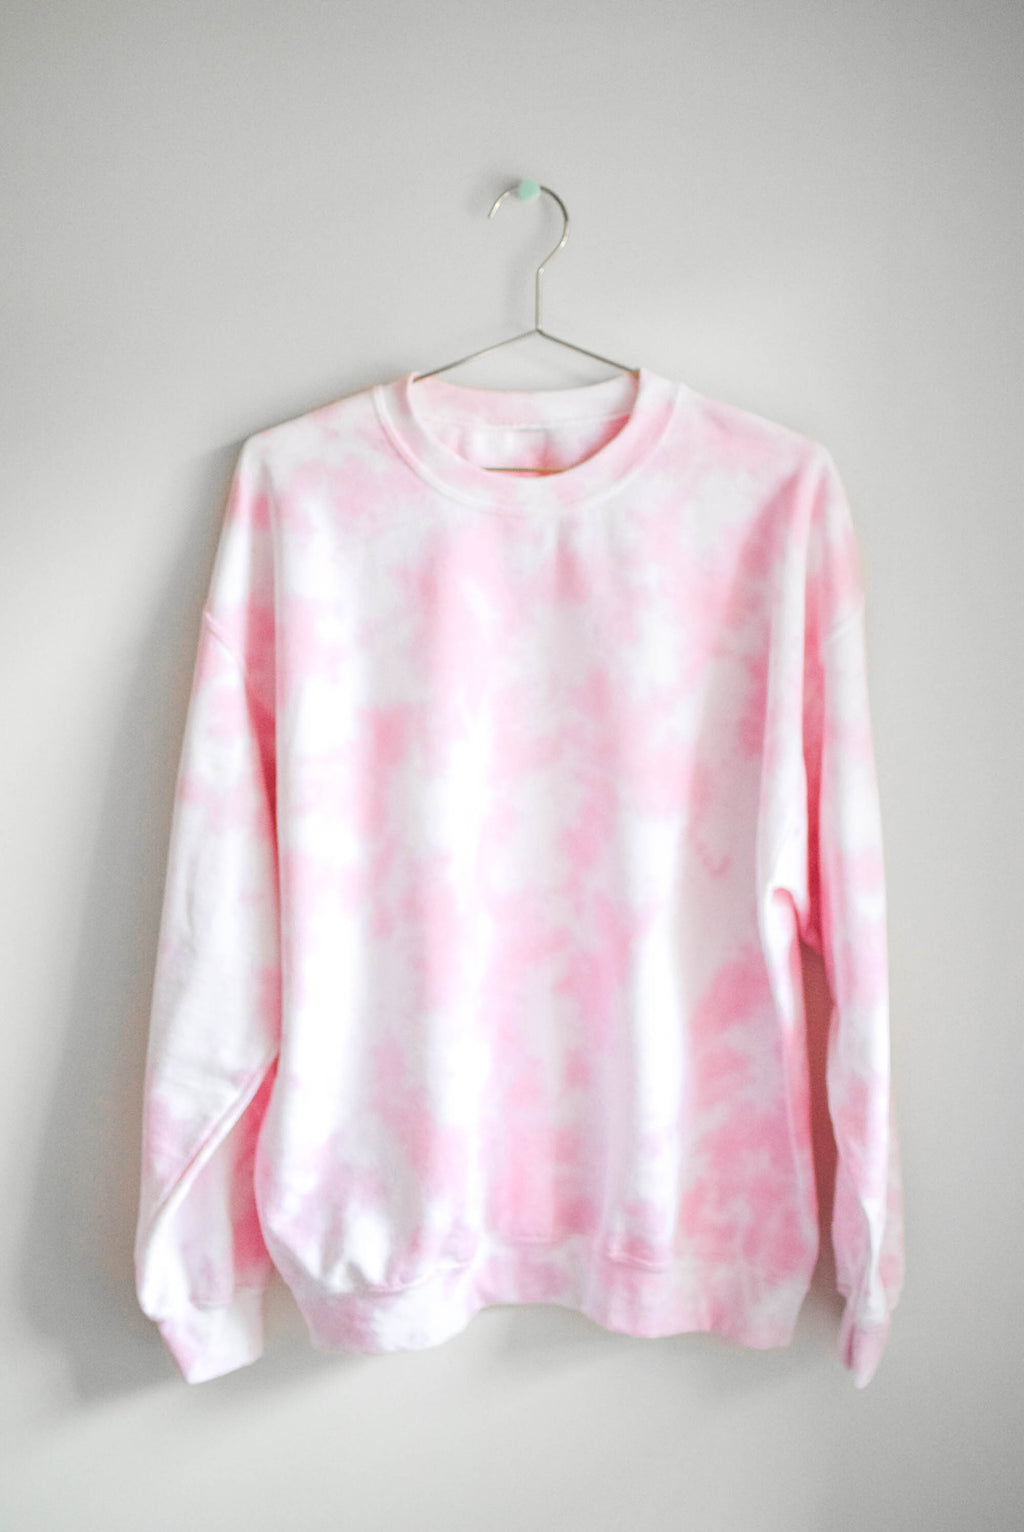 Pastel Tie Dye Sweatshirt - Pink Clouds - LARGE